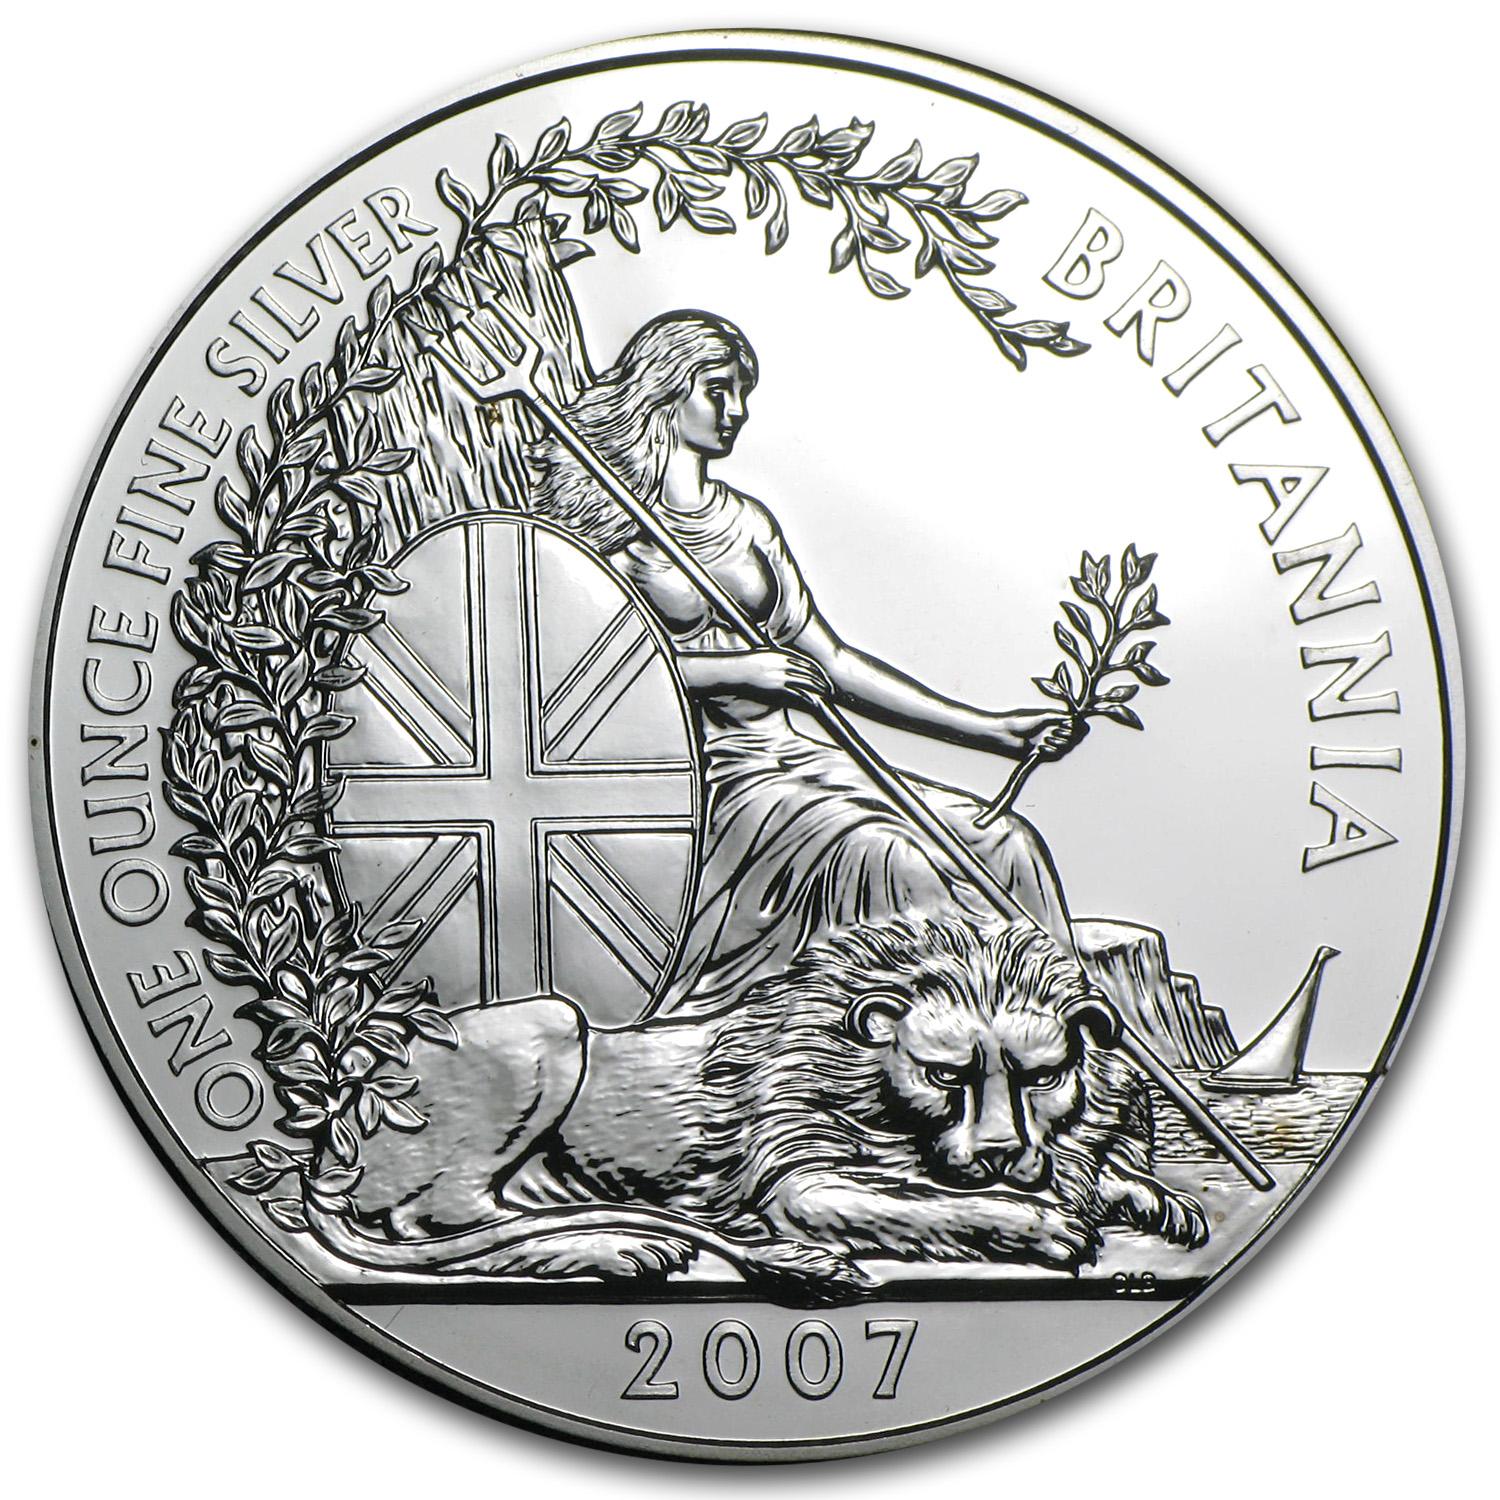 2007 Great Britain 1 oz Silver Britannia BU